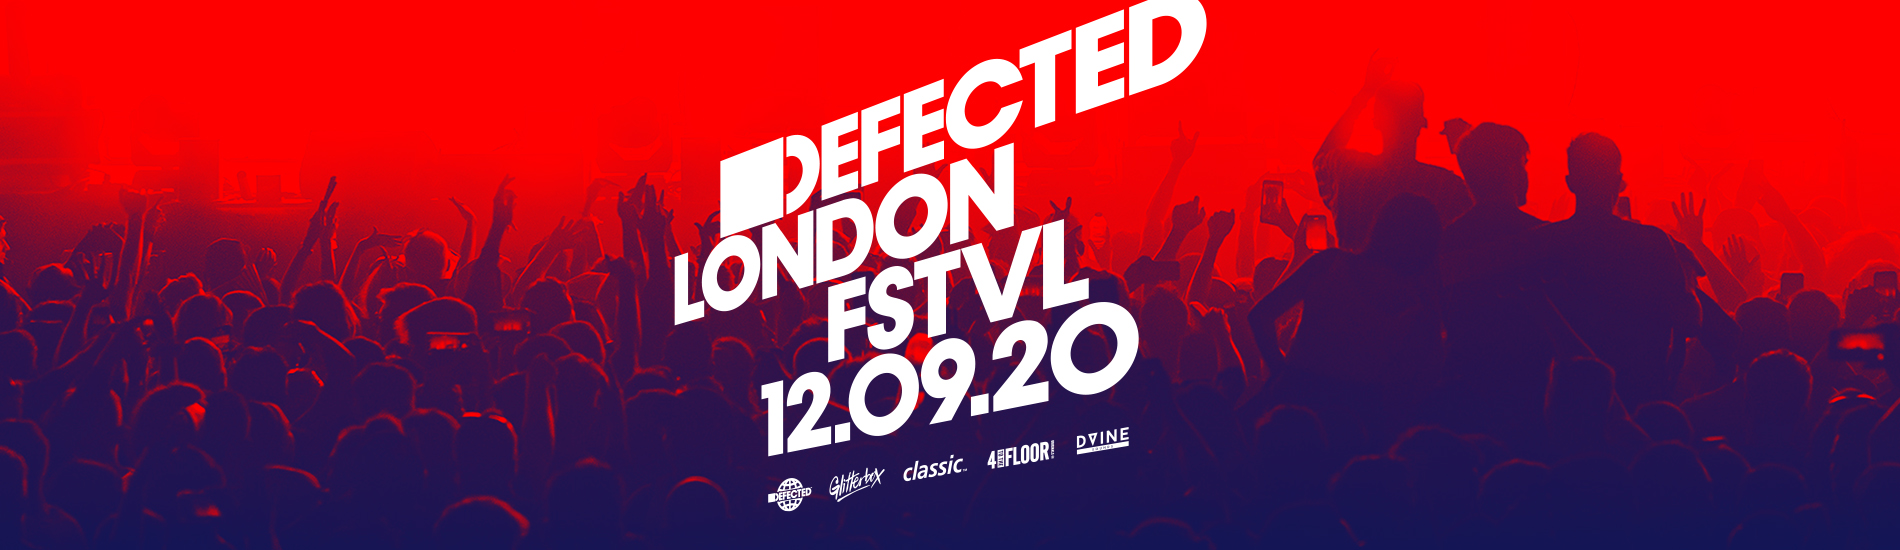 Defected London FSTVL - Cancelled